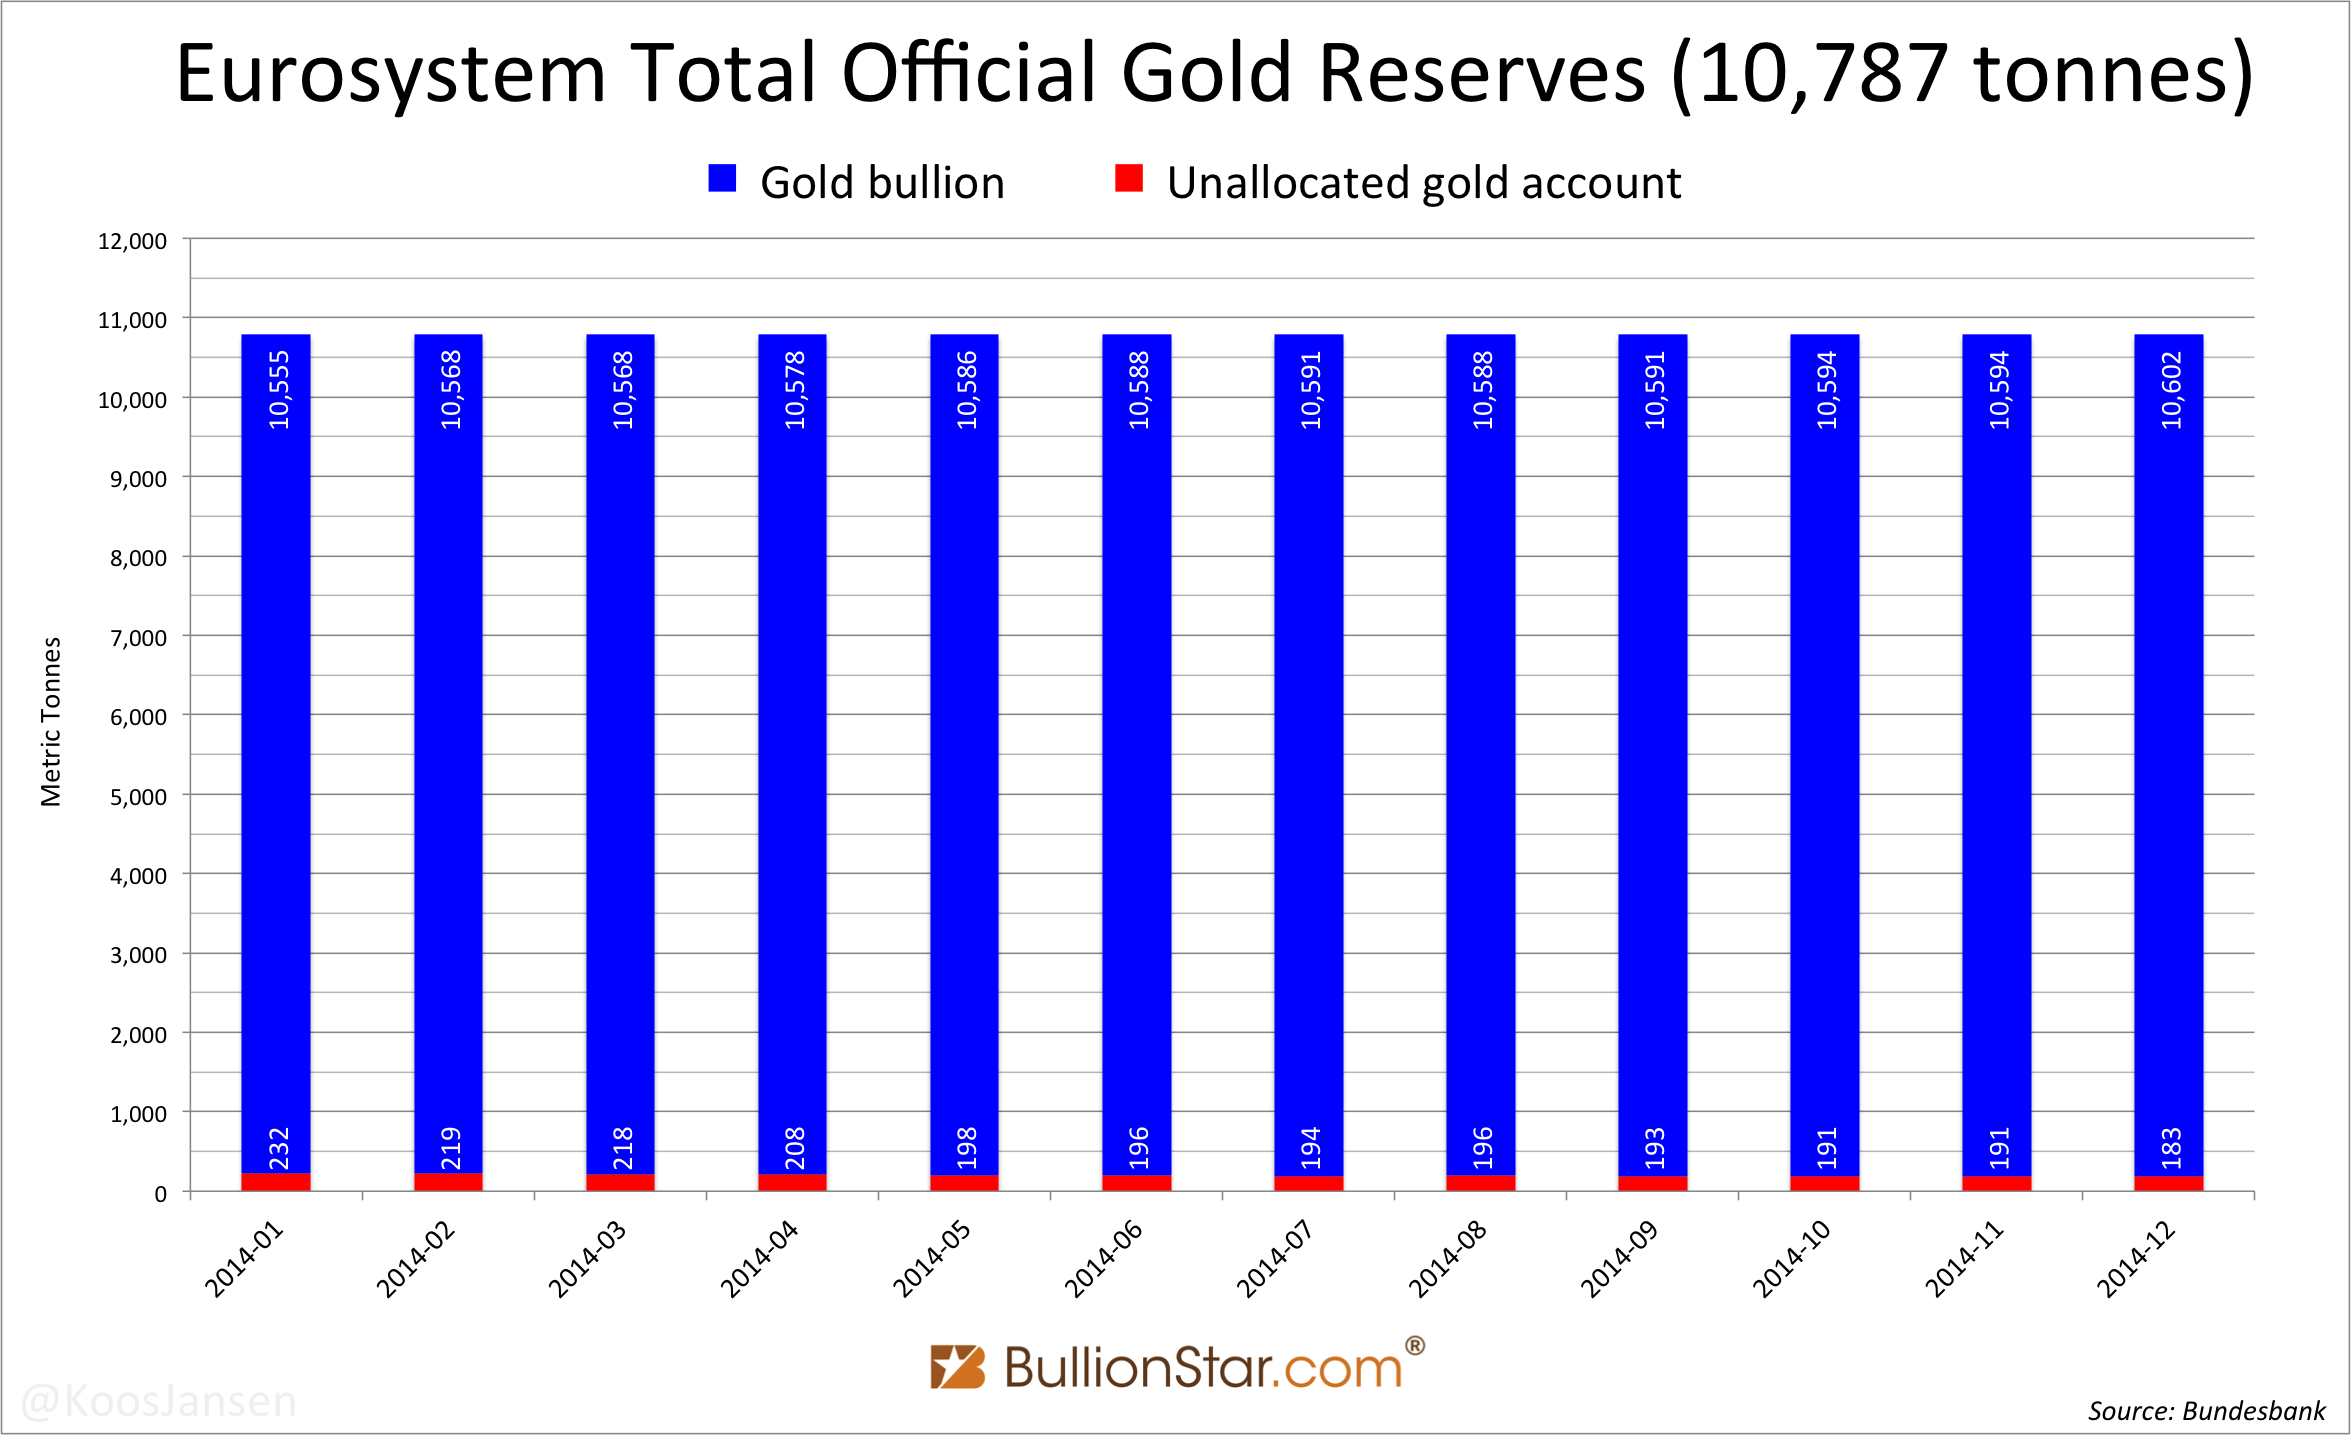 Eurosystem Official Gold Reserves Allocation, December 2014